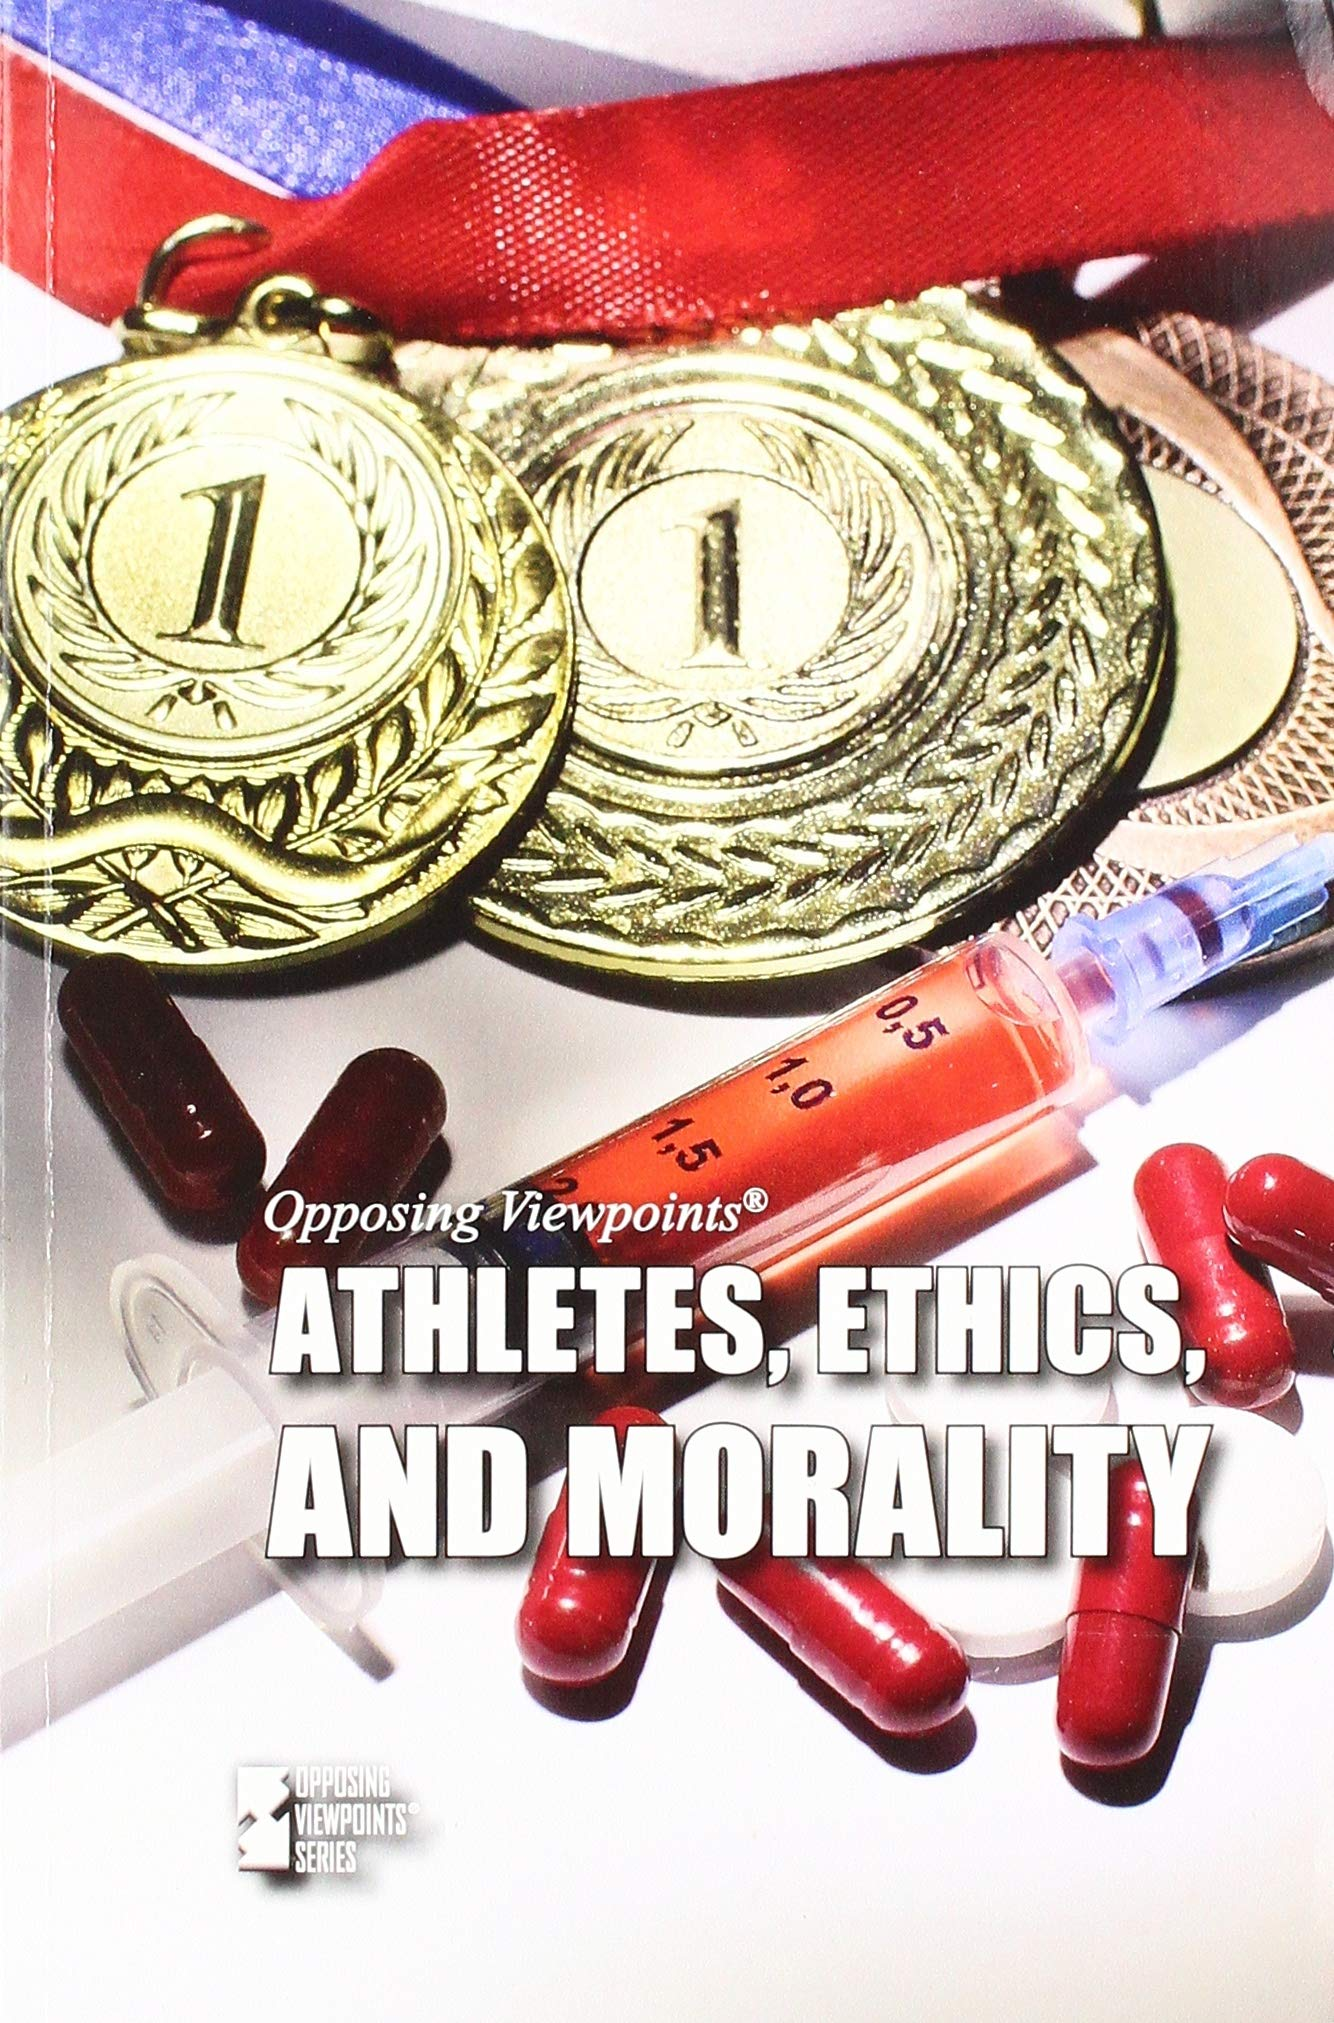 Athletes, Ethics, and Morality (Opposing Viewpoints) by Greenhaven Publishing